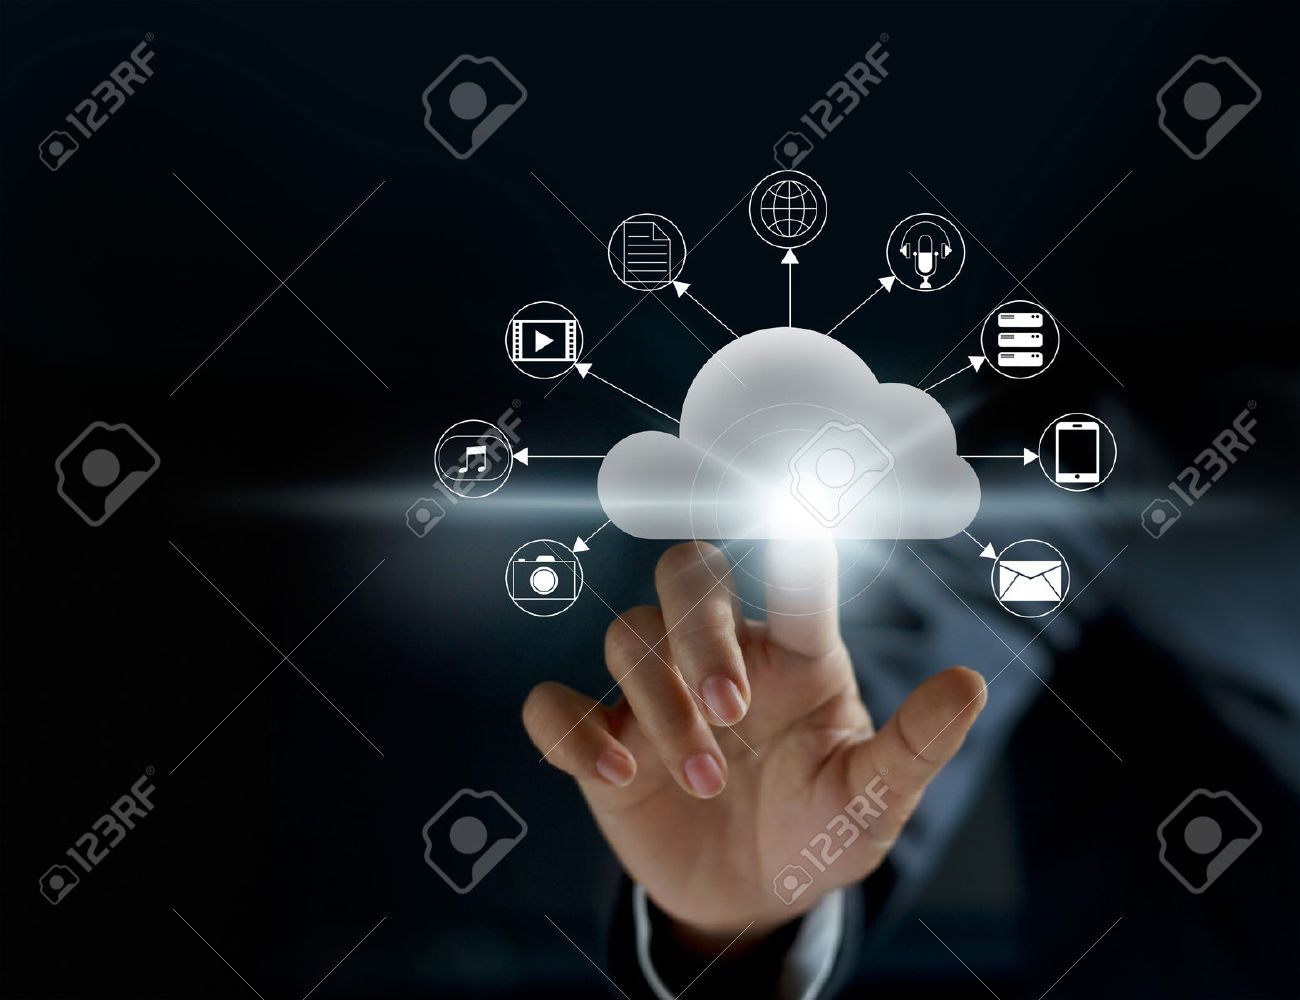 Cloud computing, futuristic display technology connectivity concept Standard-Bild - 60274316